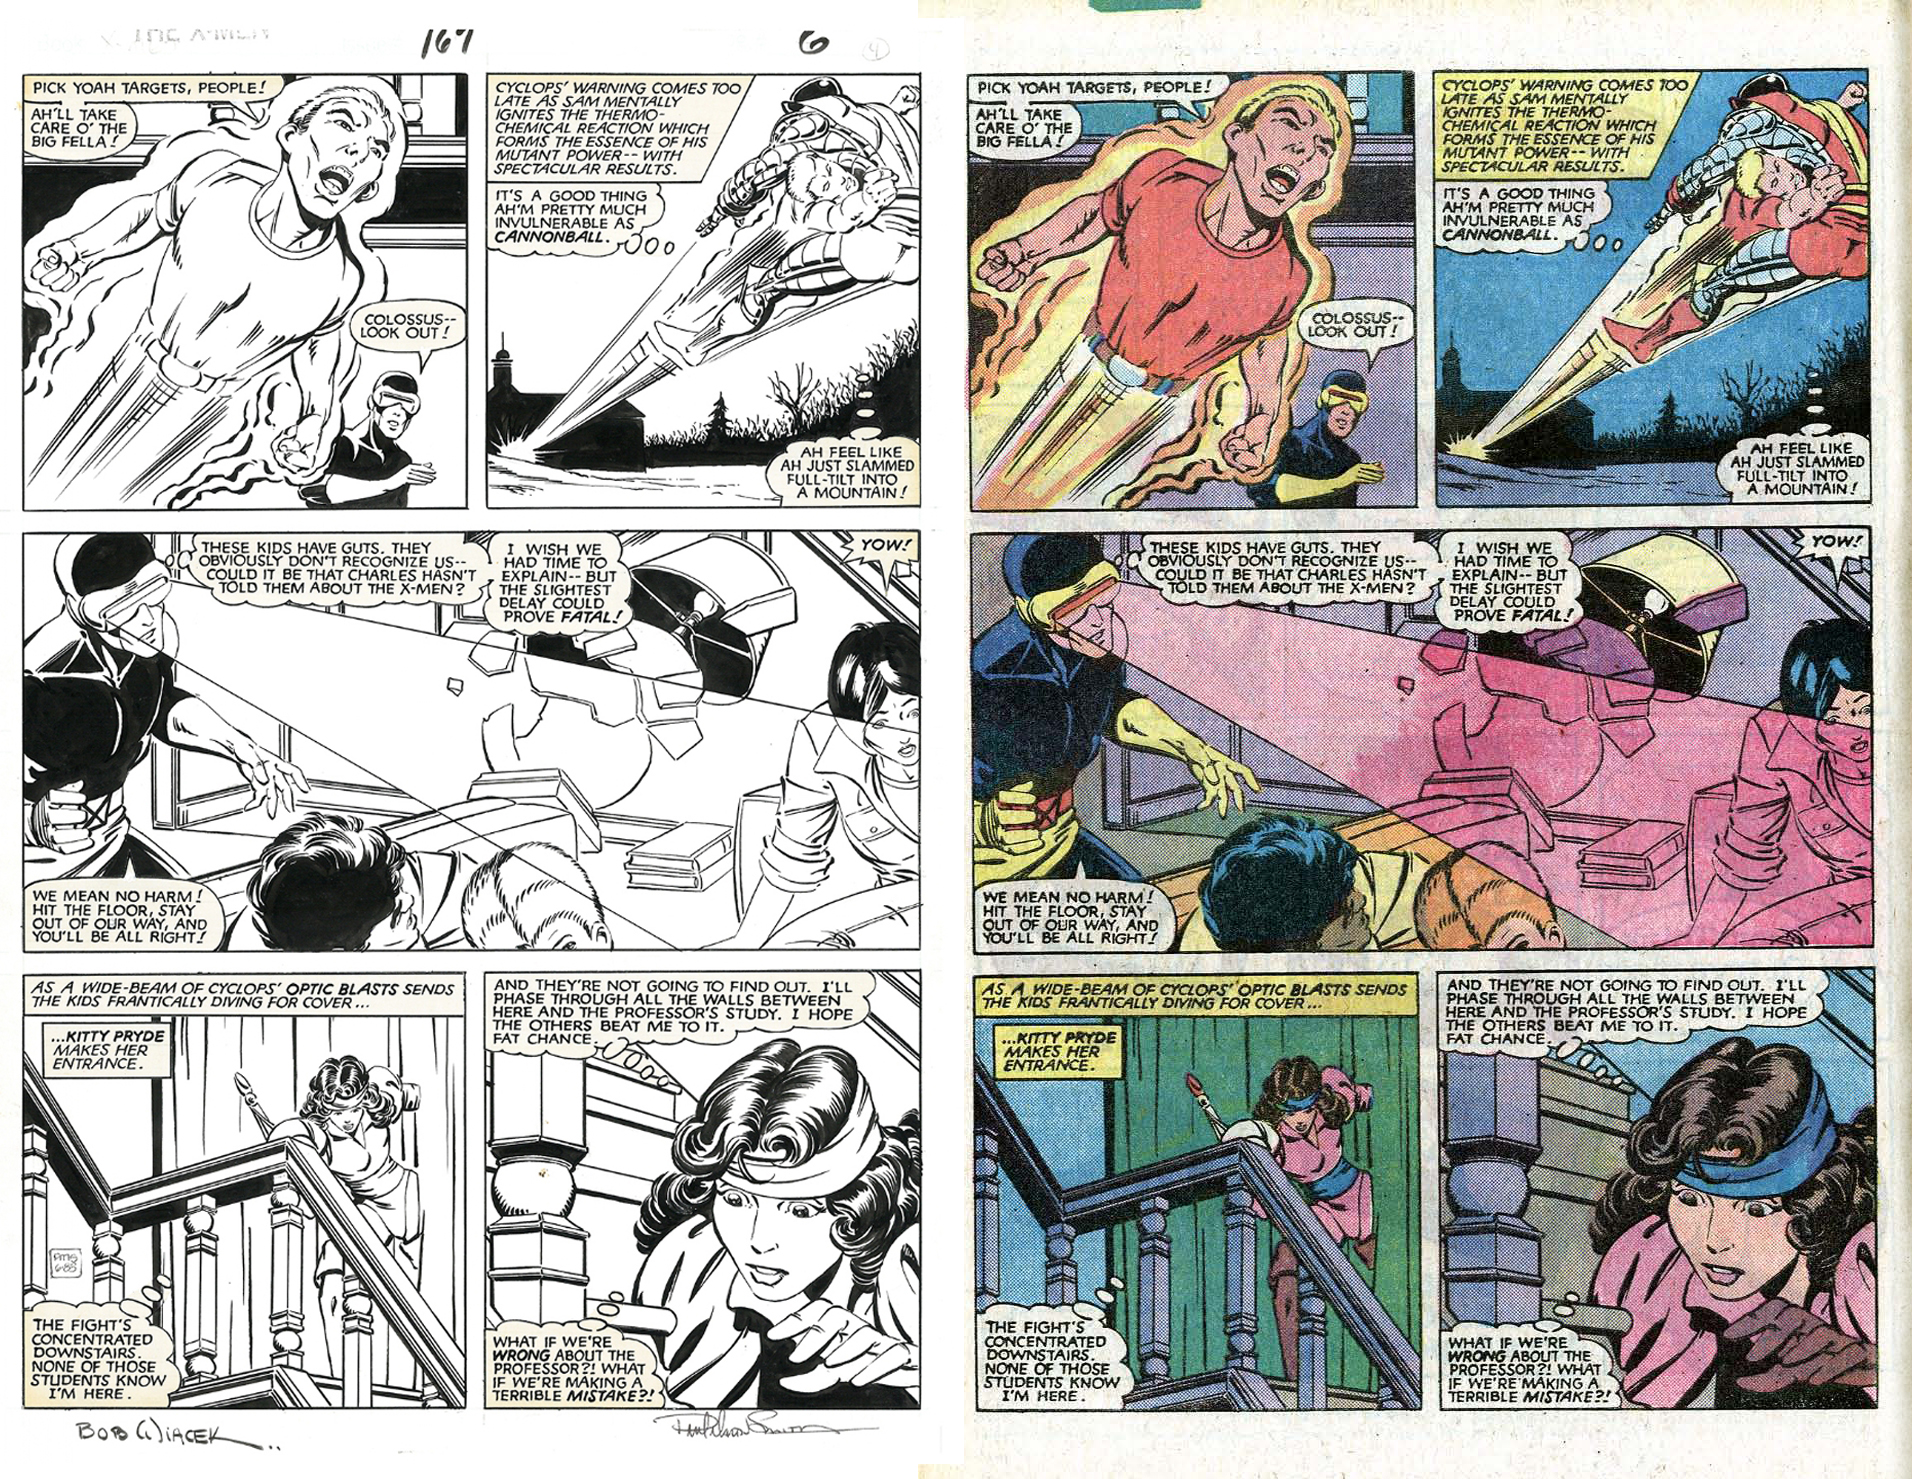 Uncanny X-Men (1981) #167 pg.6, original art to printed page. Lettered by Tom Orzechowski.